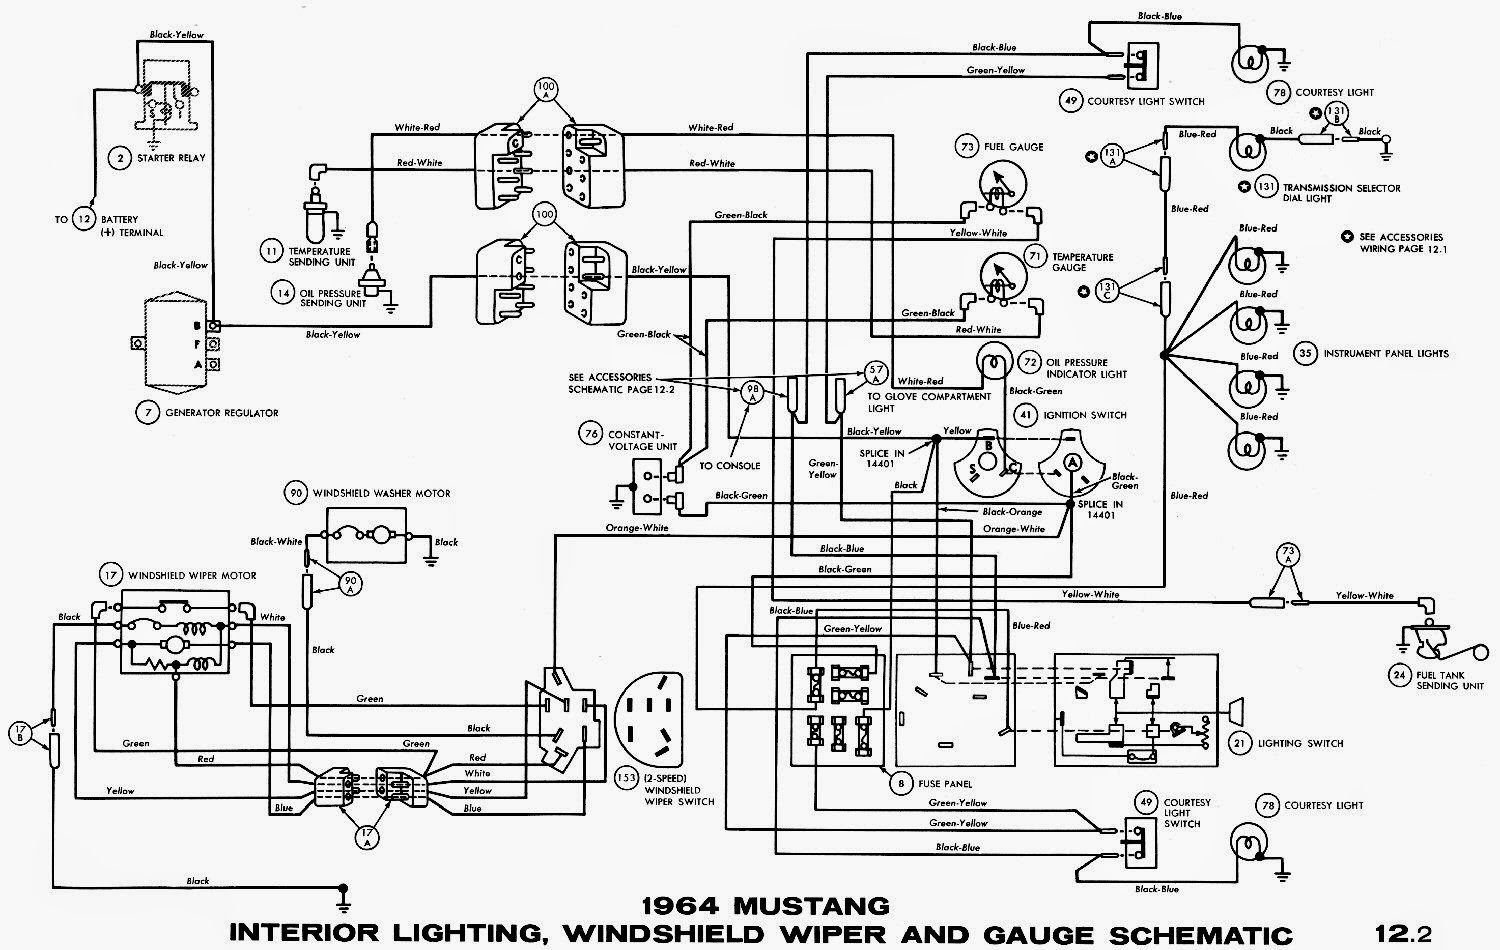 1964 mustang wiring diagrams schematic wiring diagrams 1964 mustang wiring diagrams swarovskicordoba